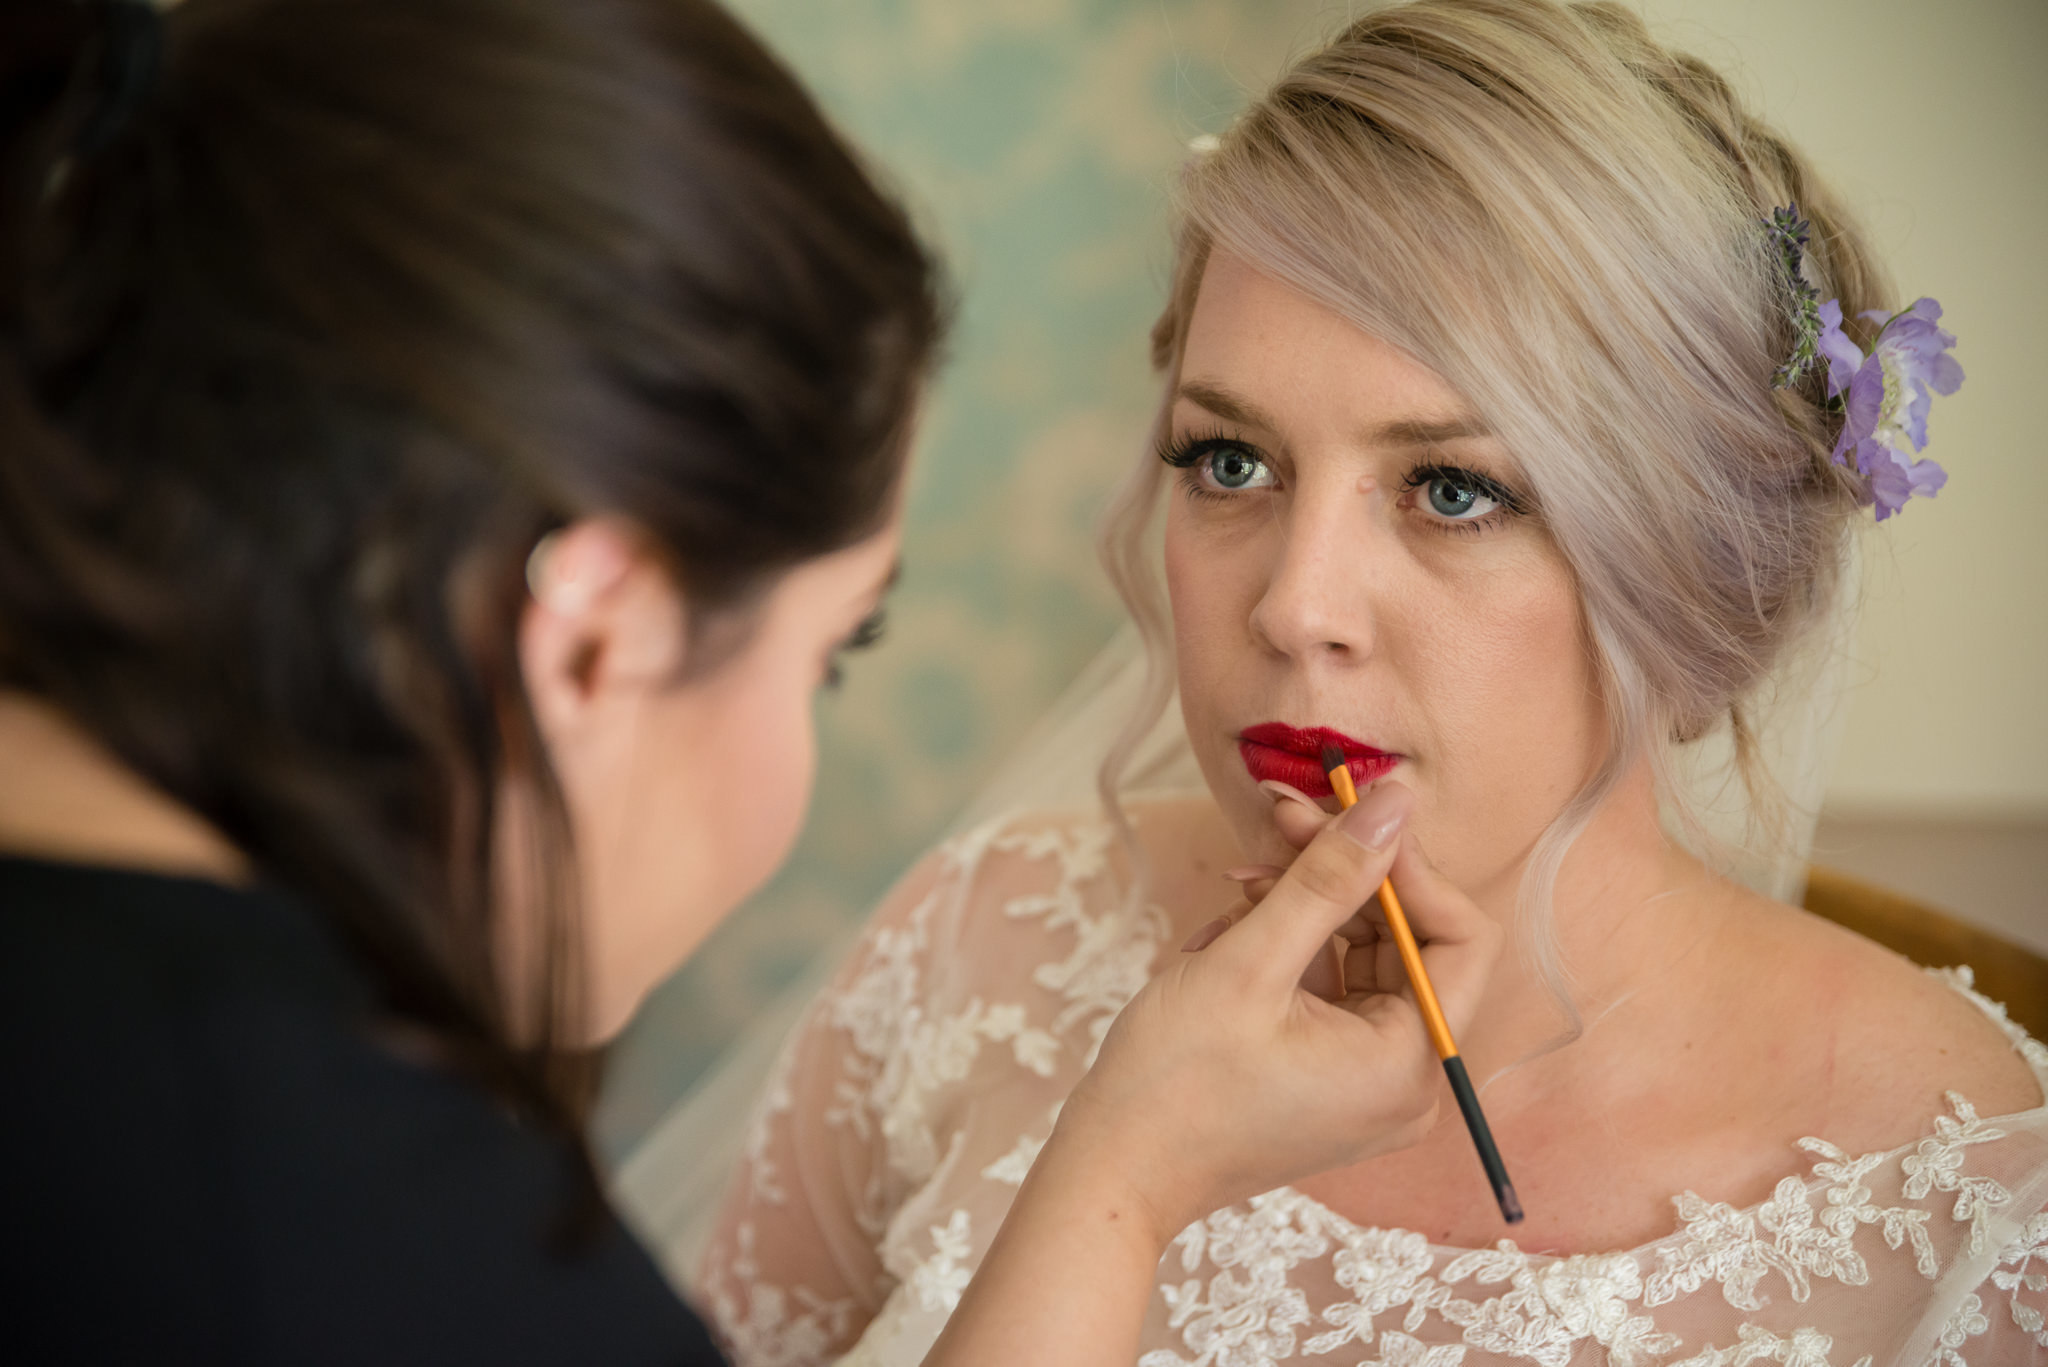 The bride has her makeup done